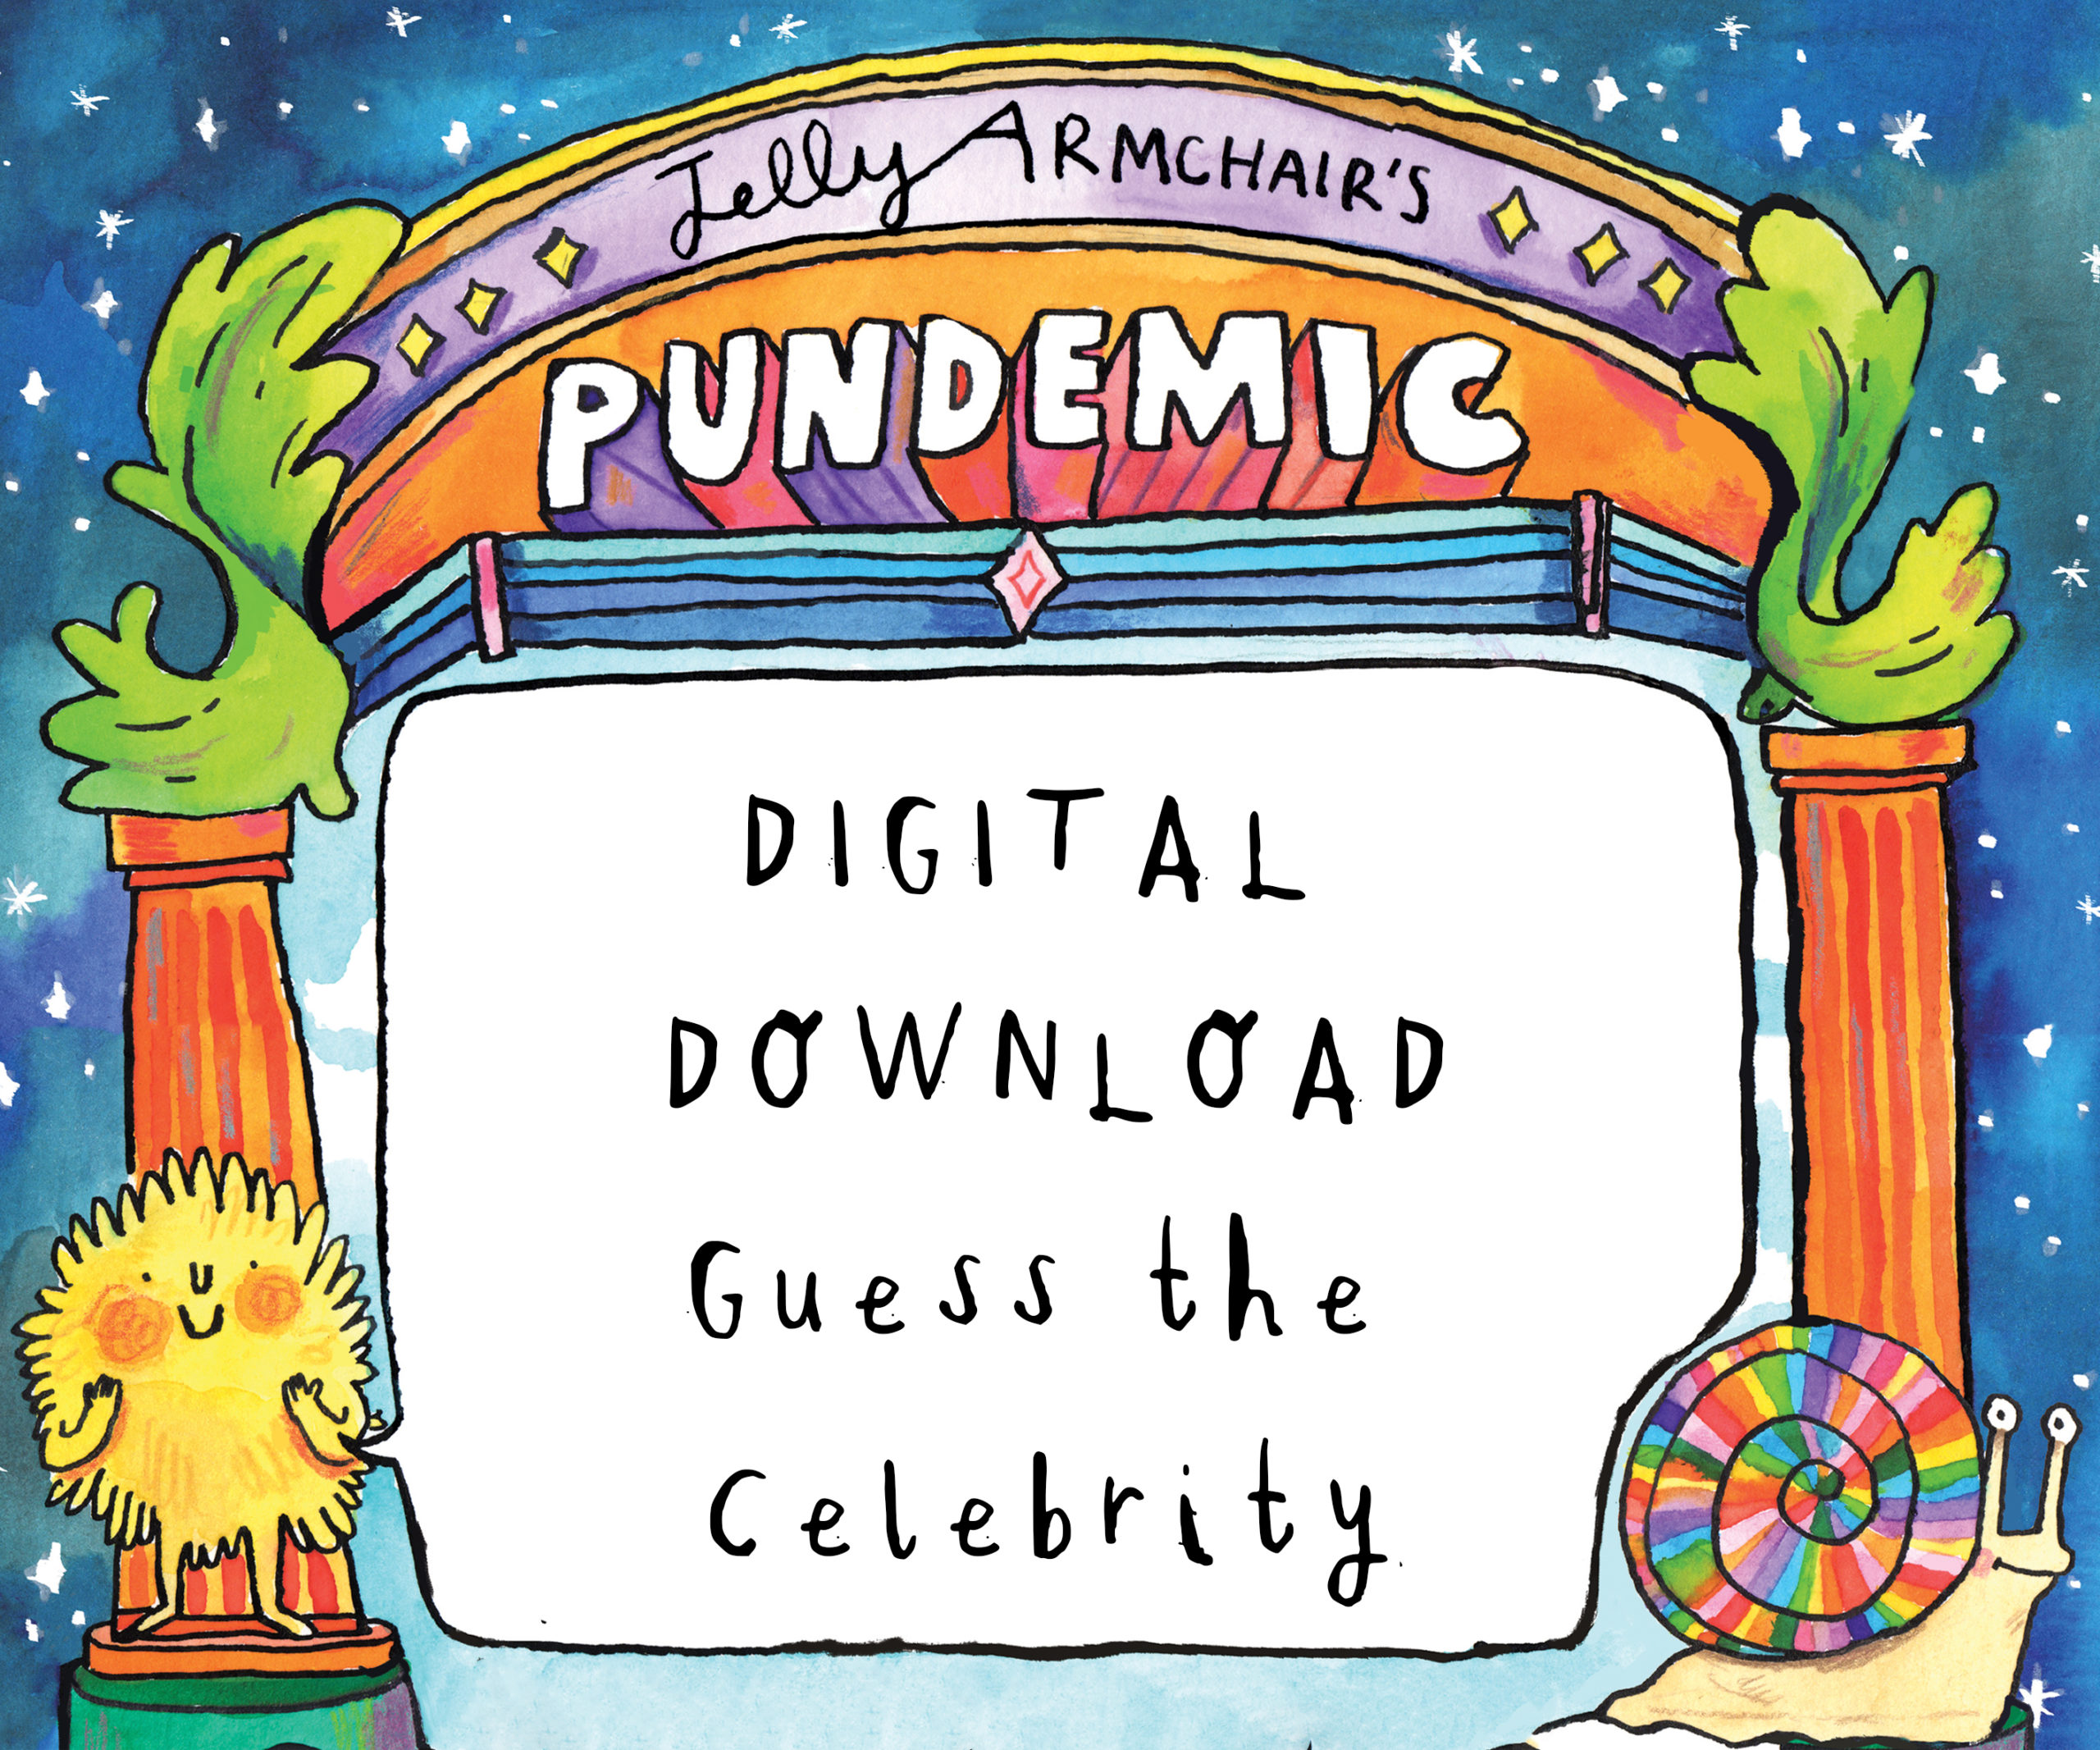 Guess-the-celebrity-digial-download-cover-scaled